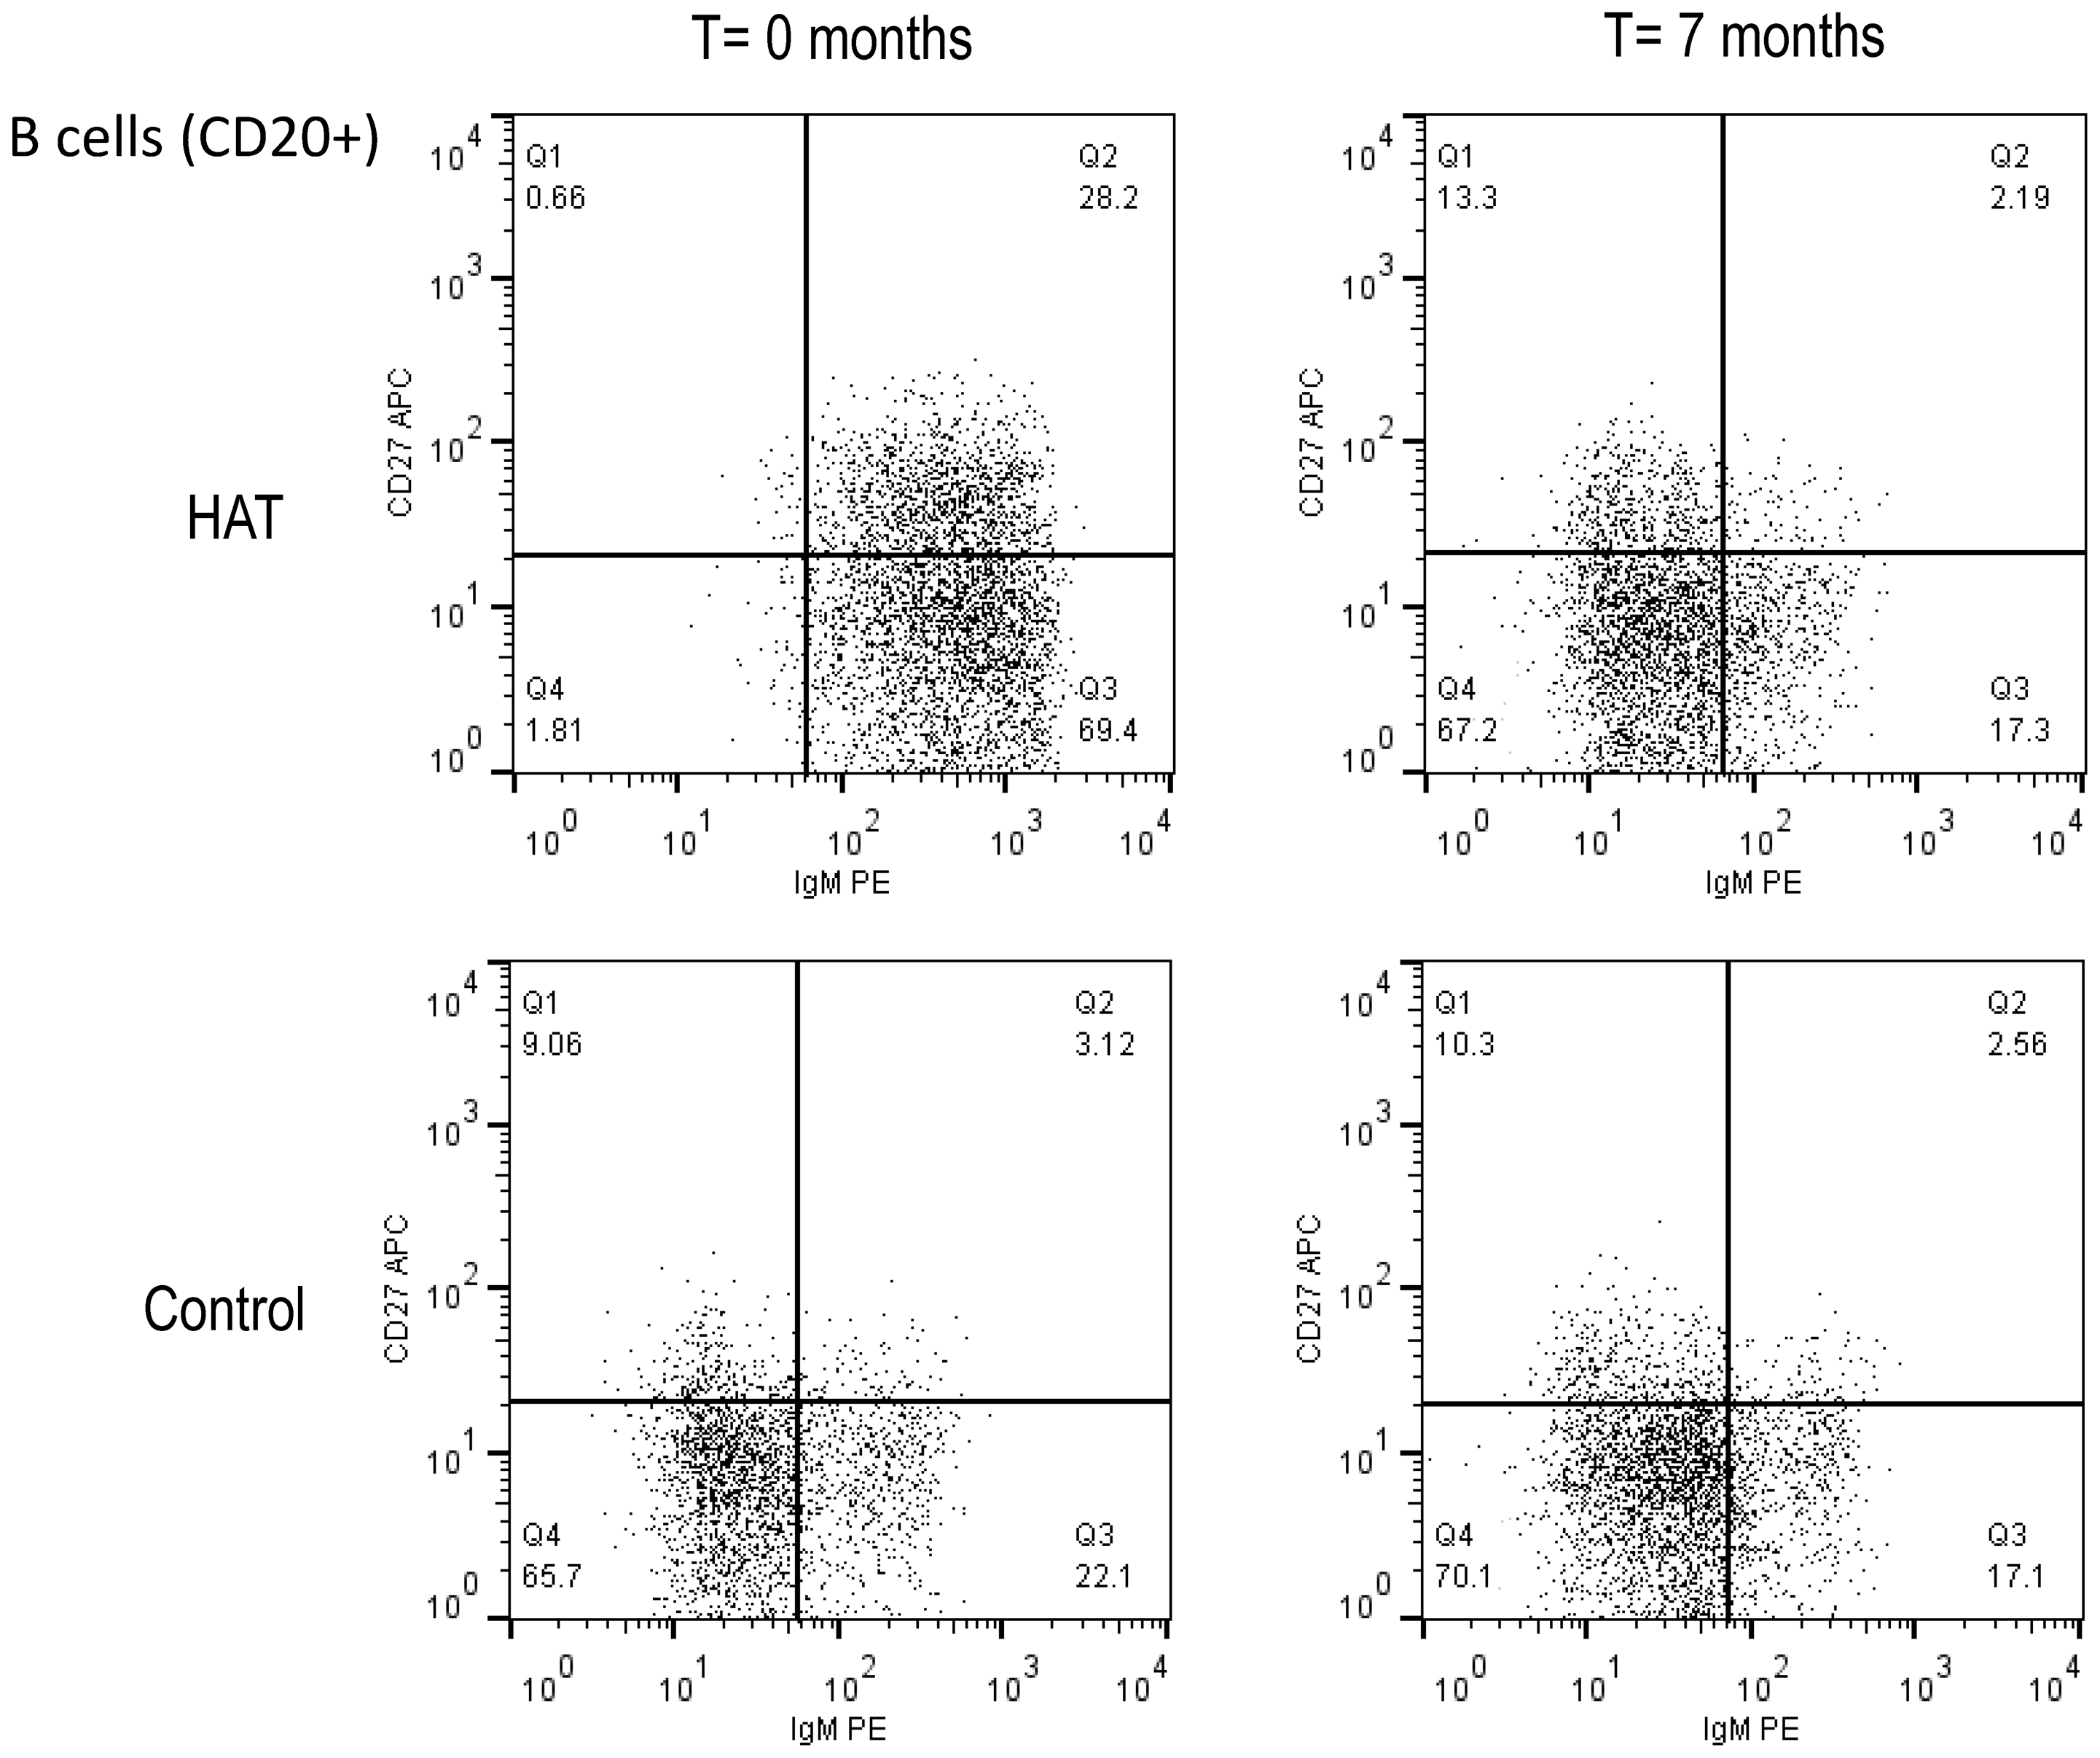 Flow cytometry dot plot of the CD20+ B-cell population in HAT and in a control.